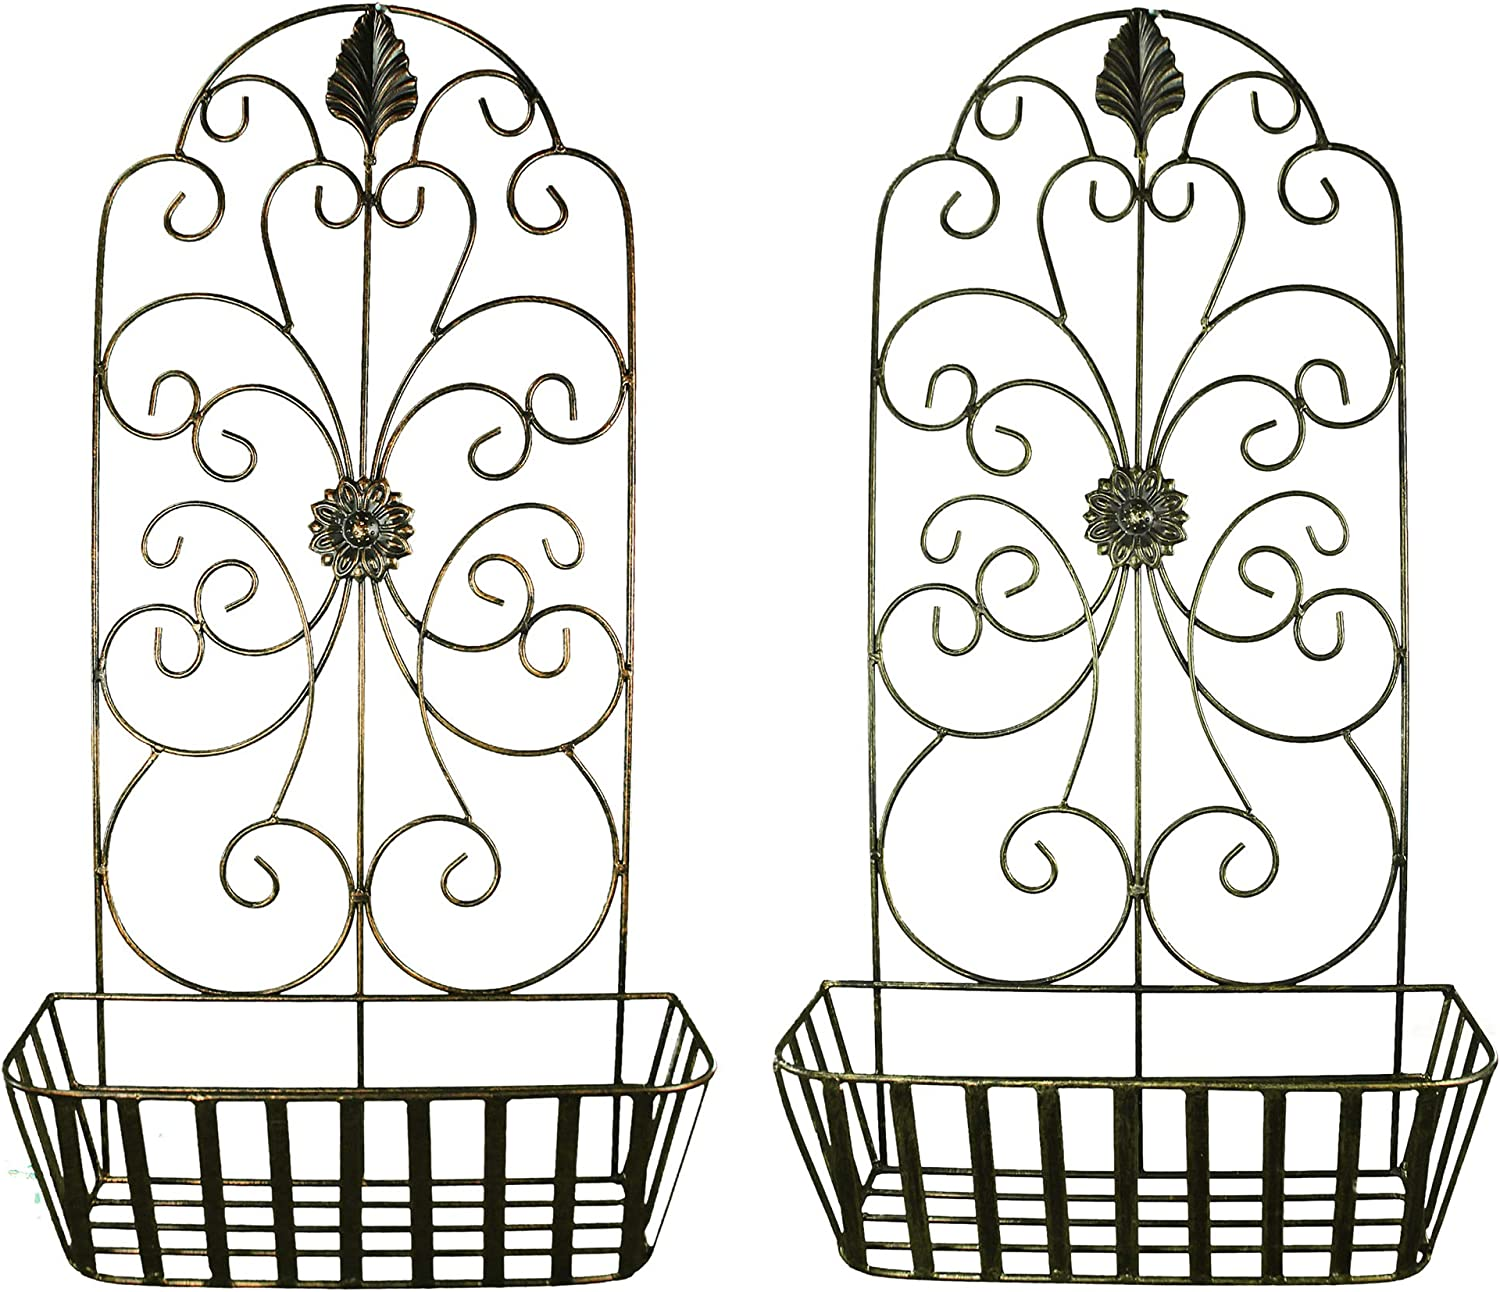 Benjara Metal Wall Decor with Intricate Design and Wired Basket, Assortment of Two, Gray